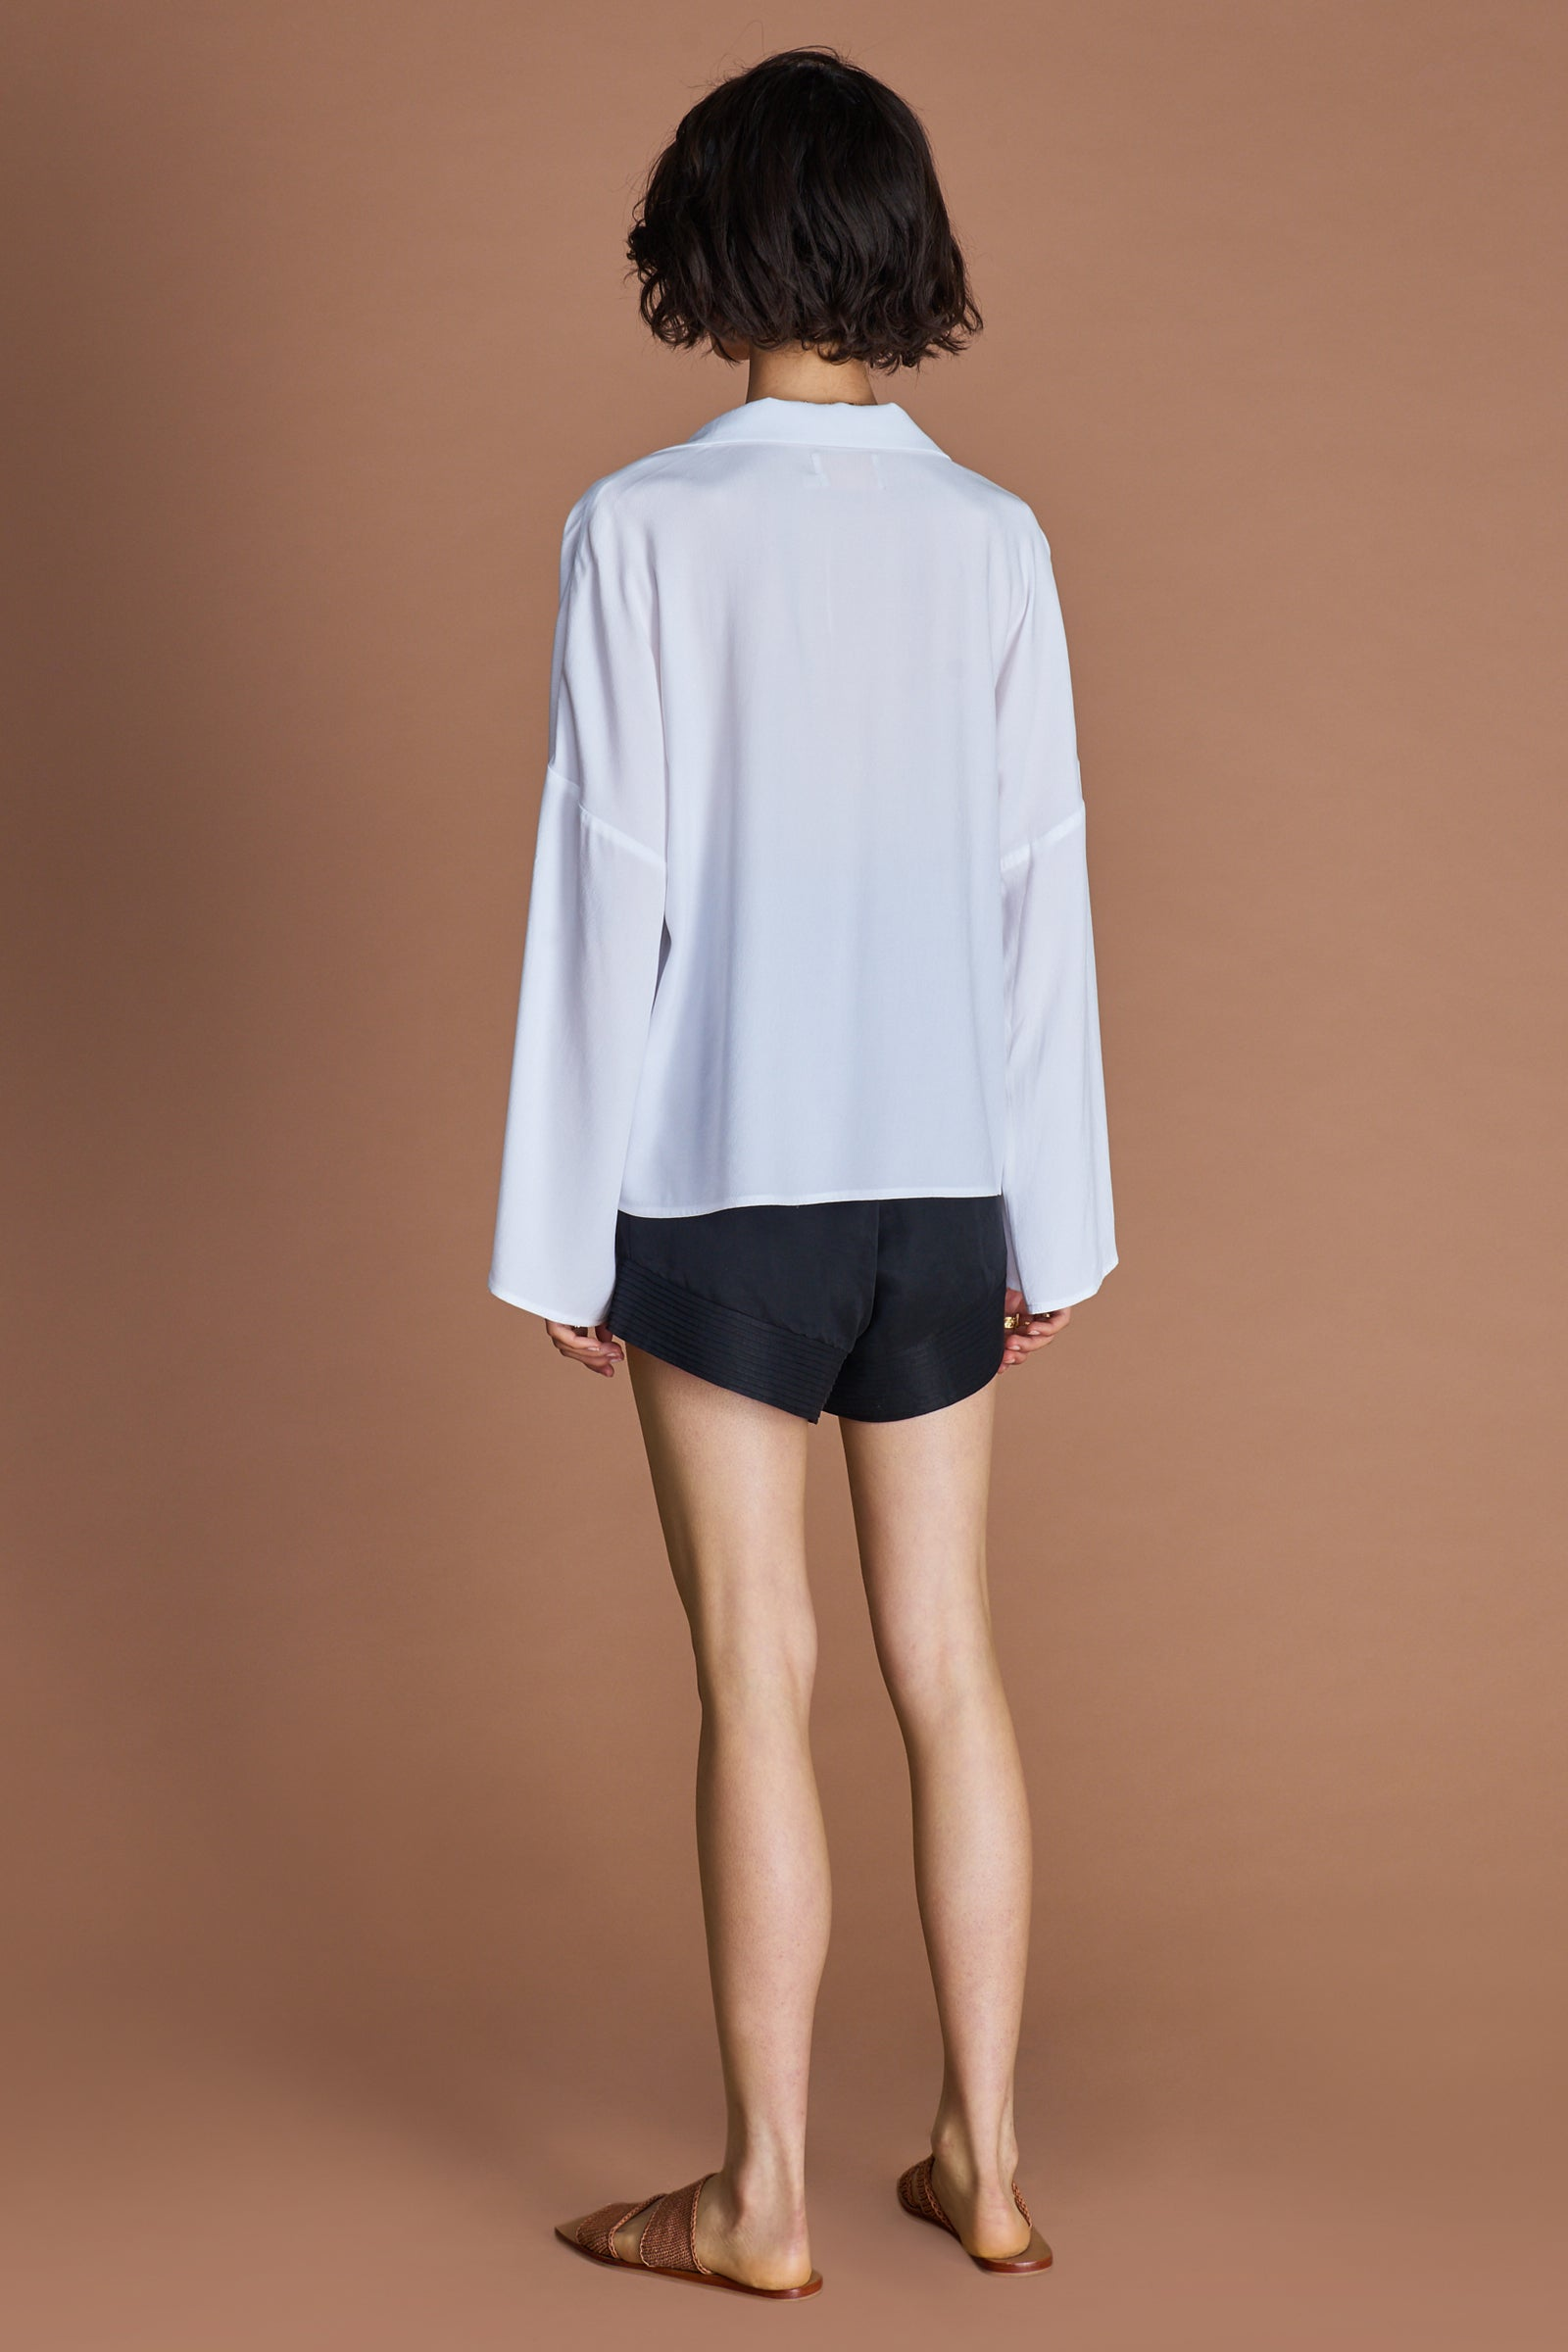 THE LOLA BOYFRIEND SHIRT